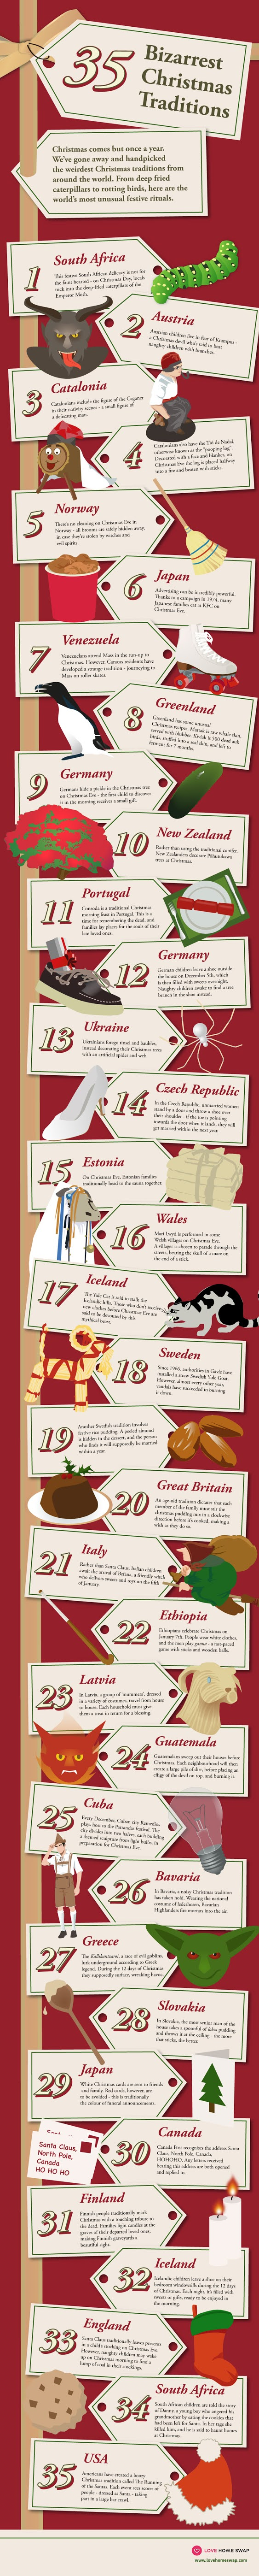 30+ Weird Christmas Traditions Around The World [infographic]